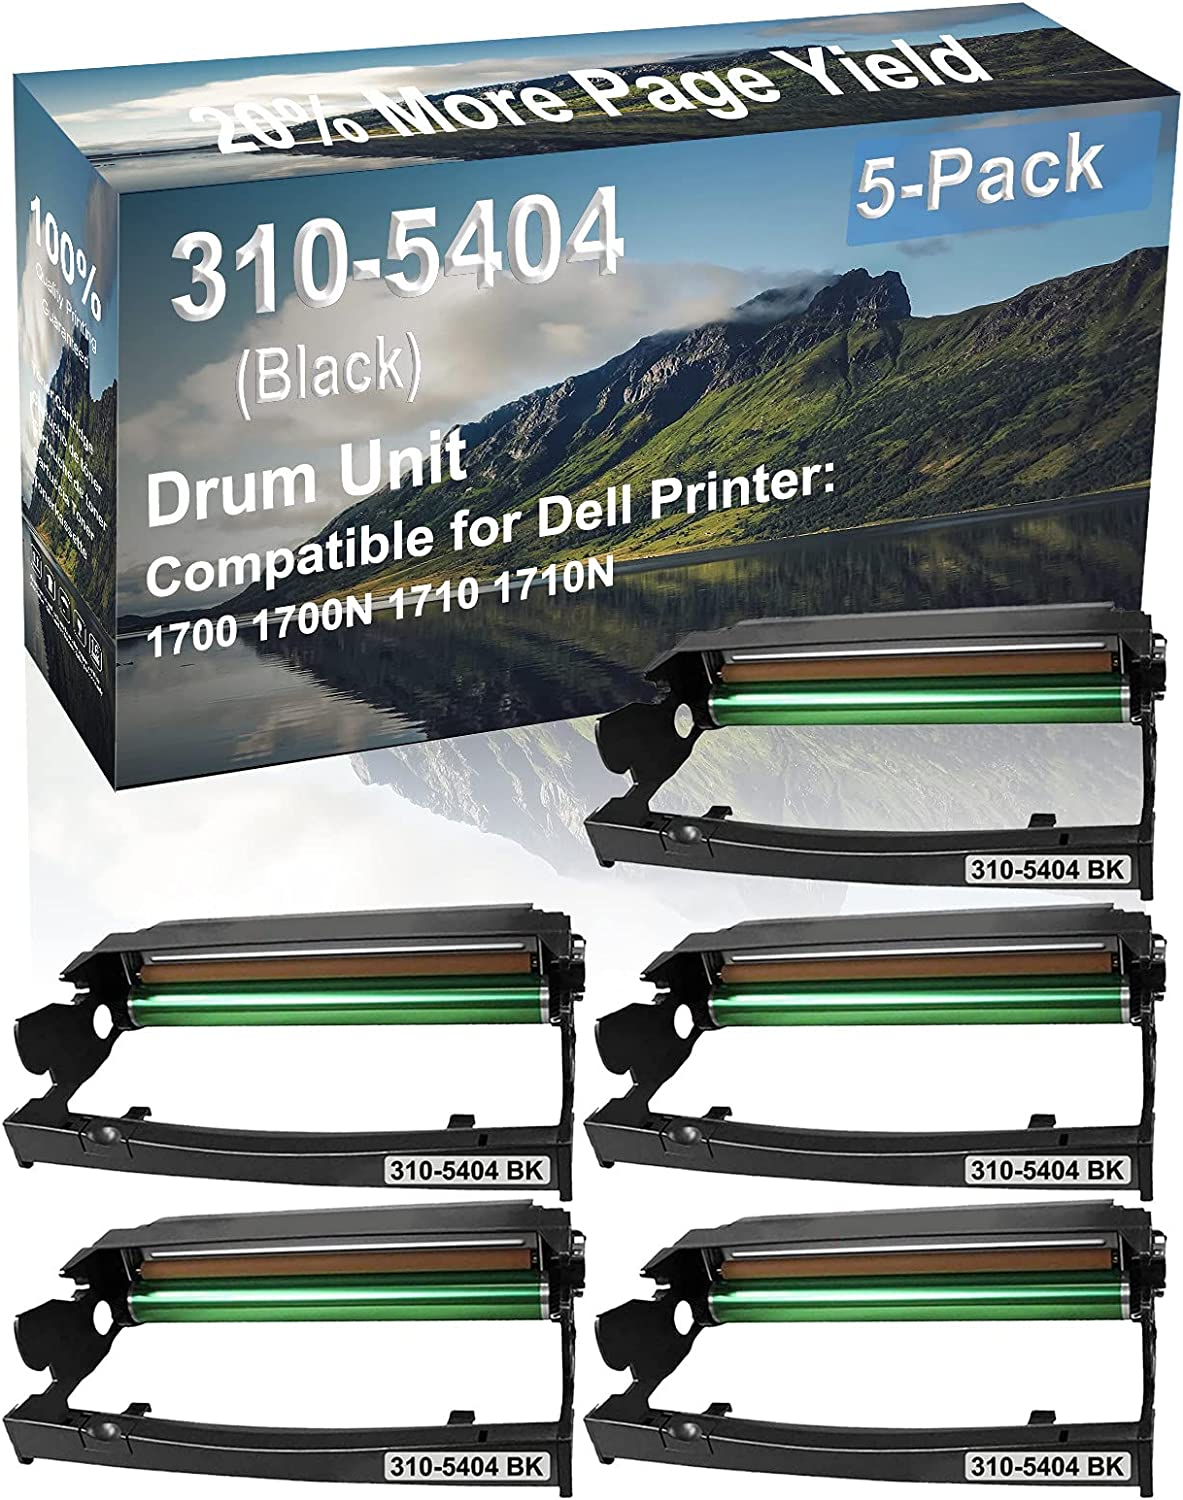 5-Pack Compatible Drum Unit (Black) Replacement for Dell 310-5404 Drum Kit use for Dell 1700 1700N 1710 1710N Printer